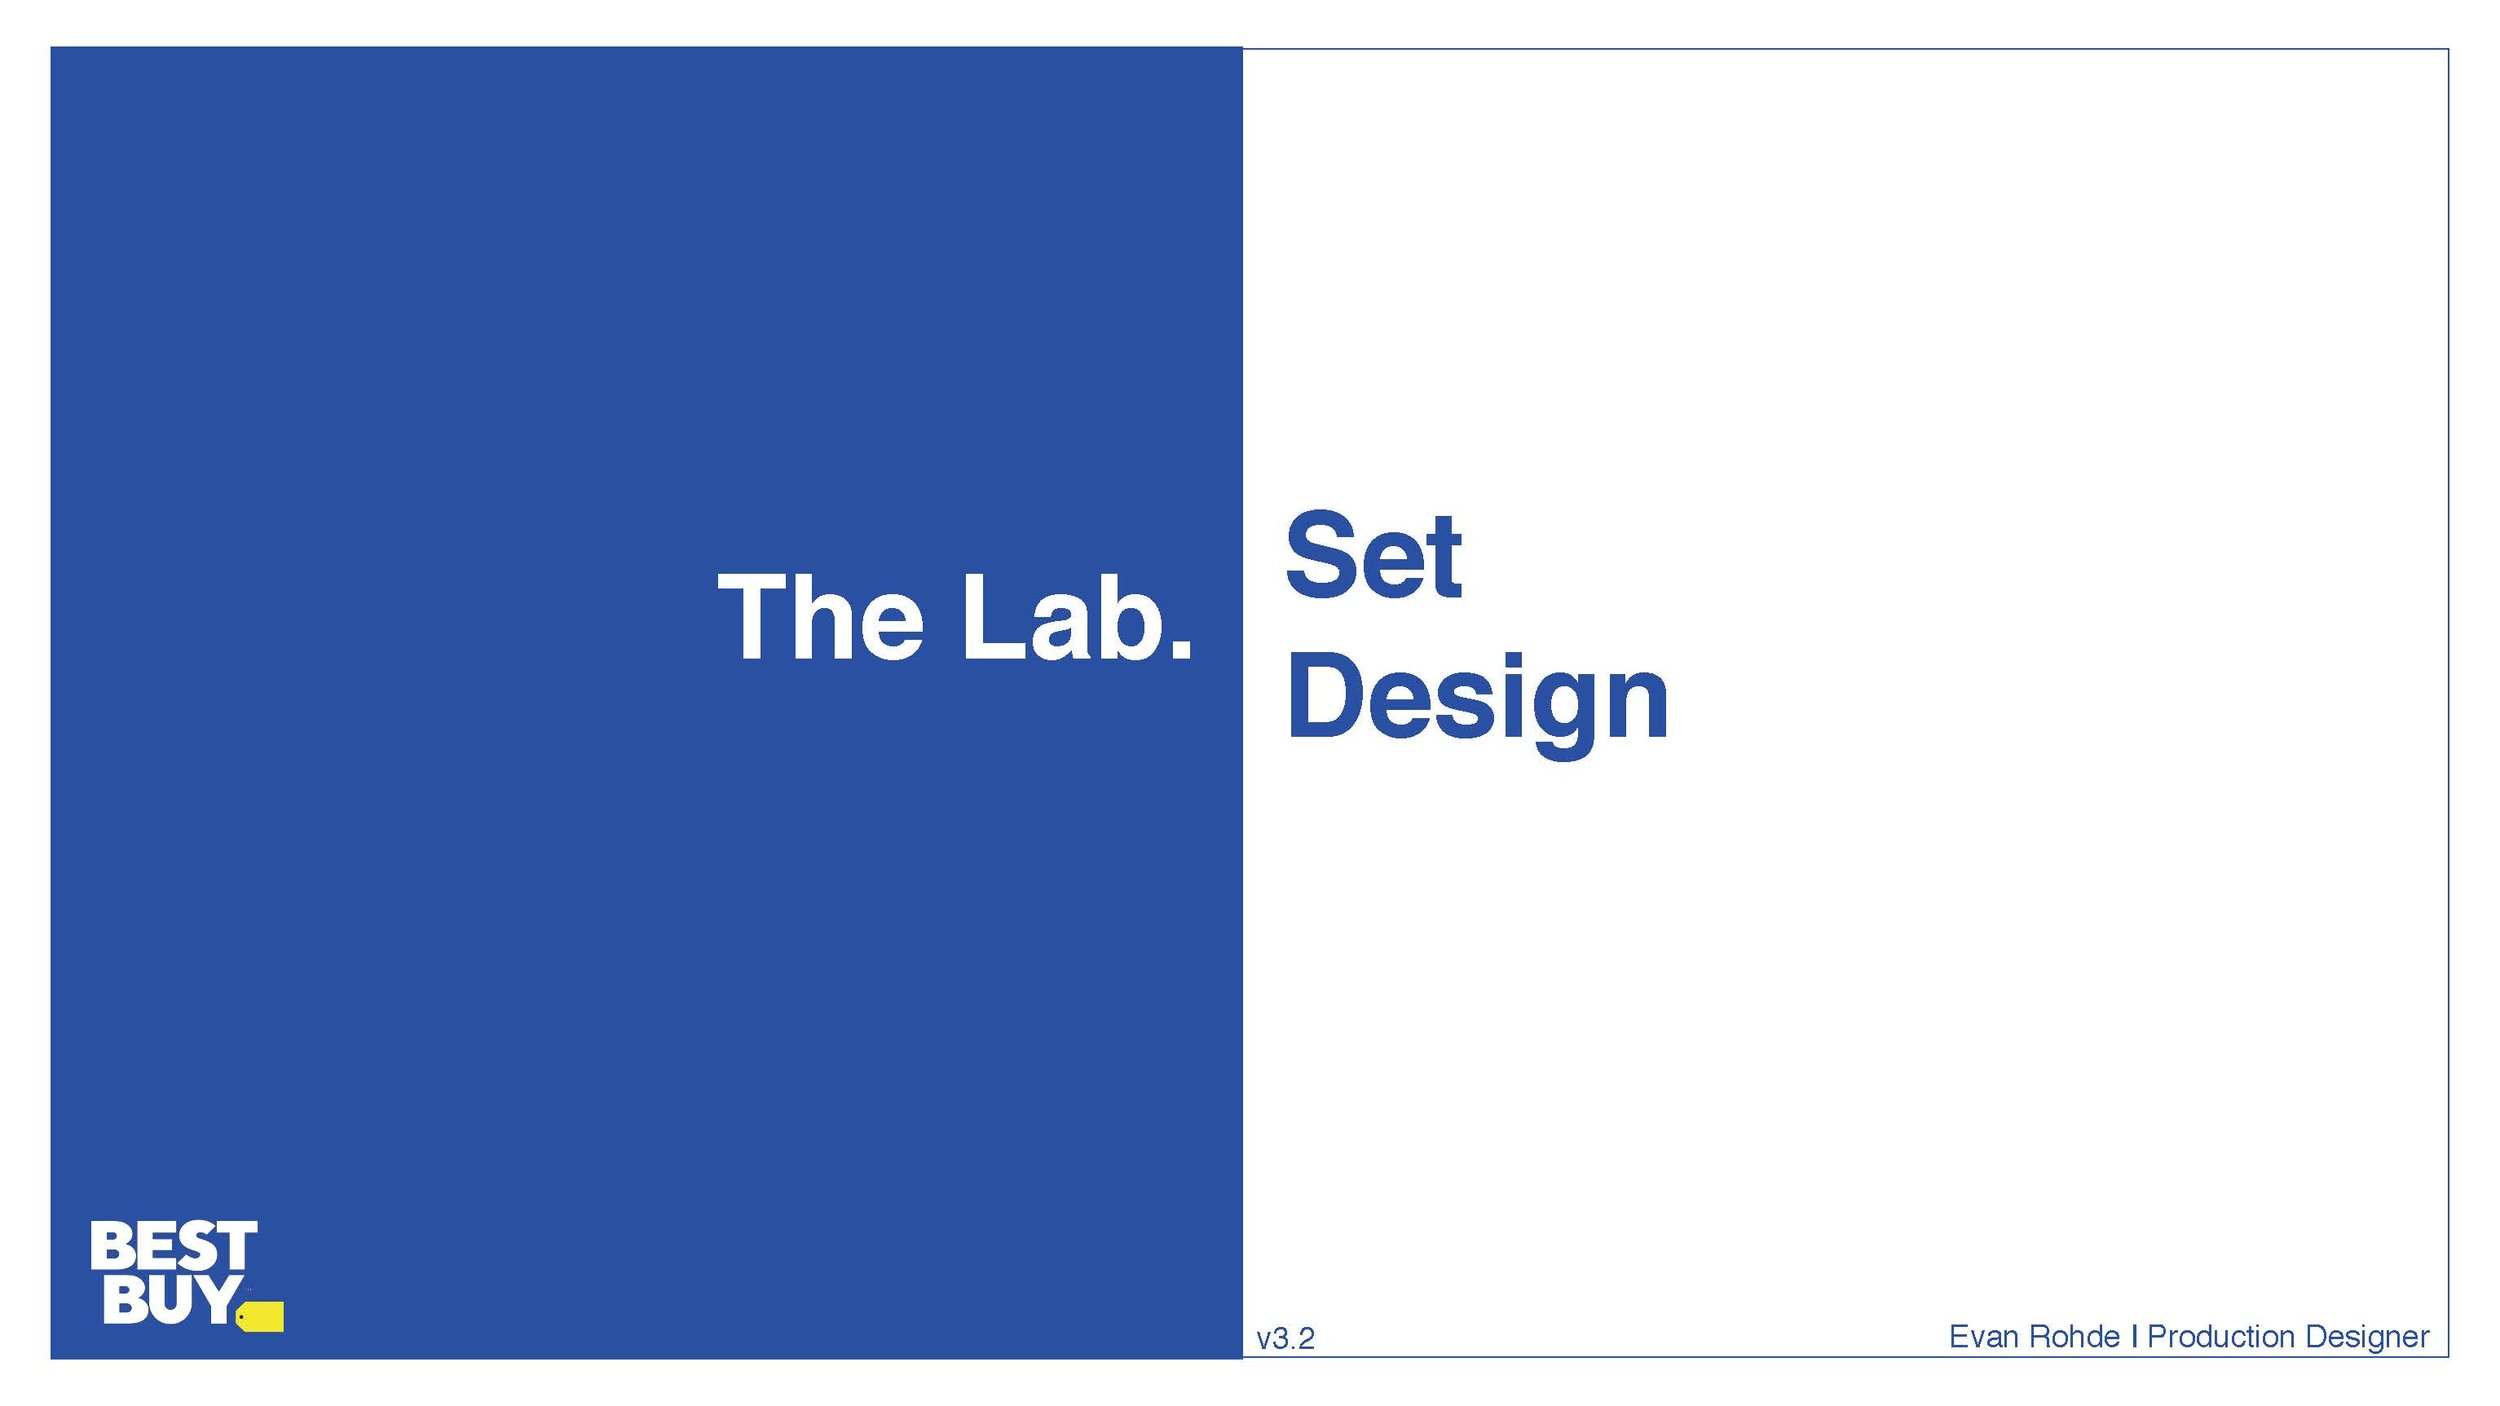 Best Buy %22The Lab%22- Set Design 3.2a copy_Page_01.jpg